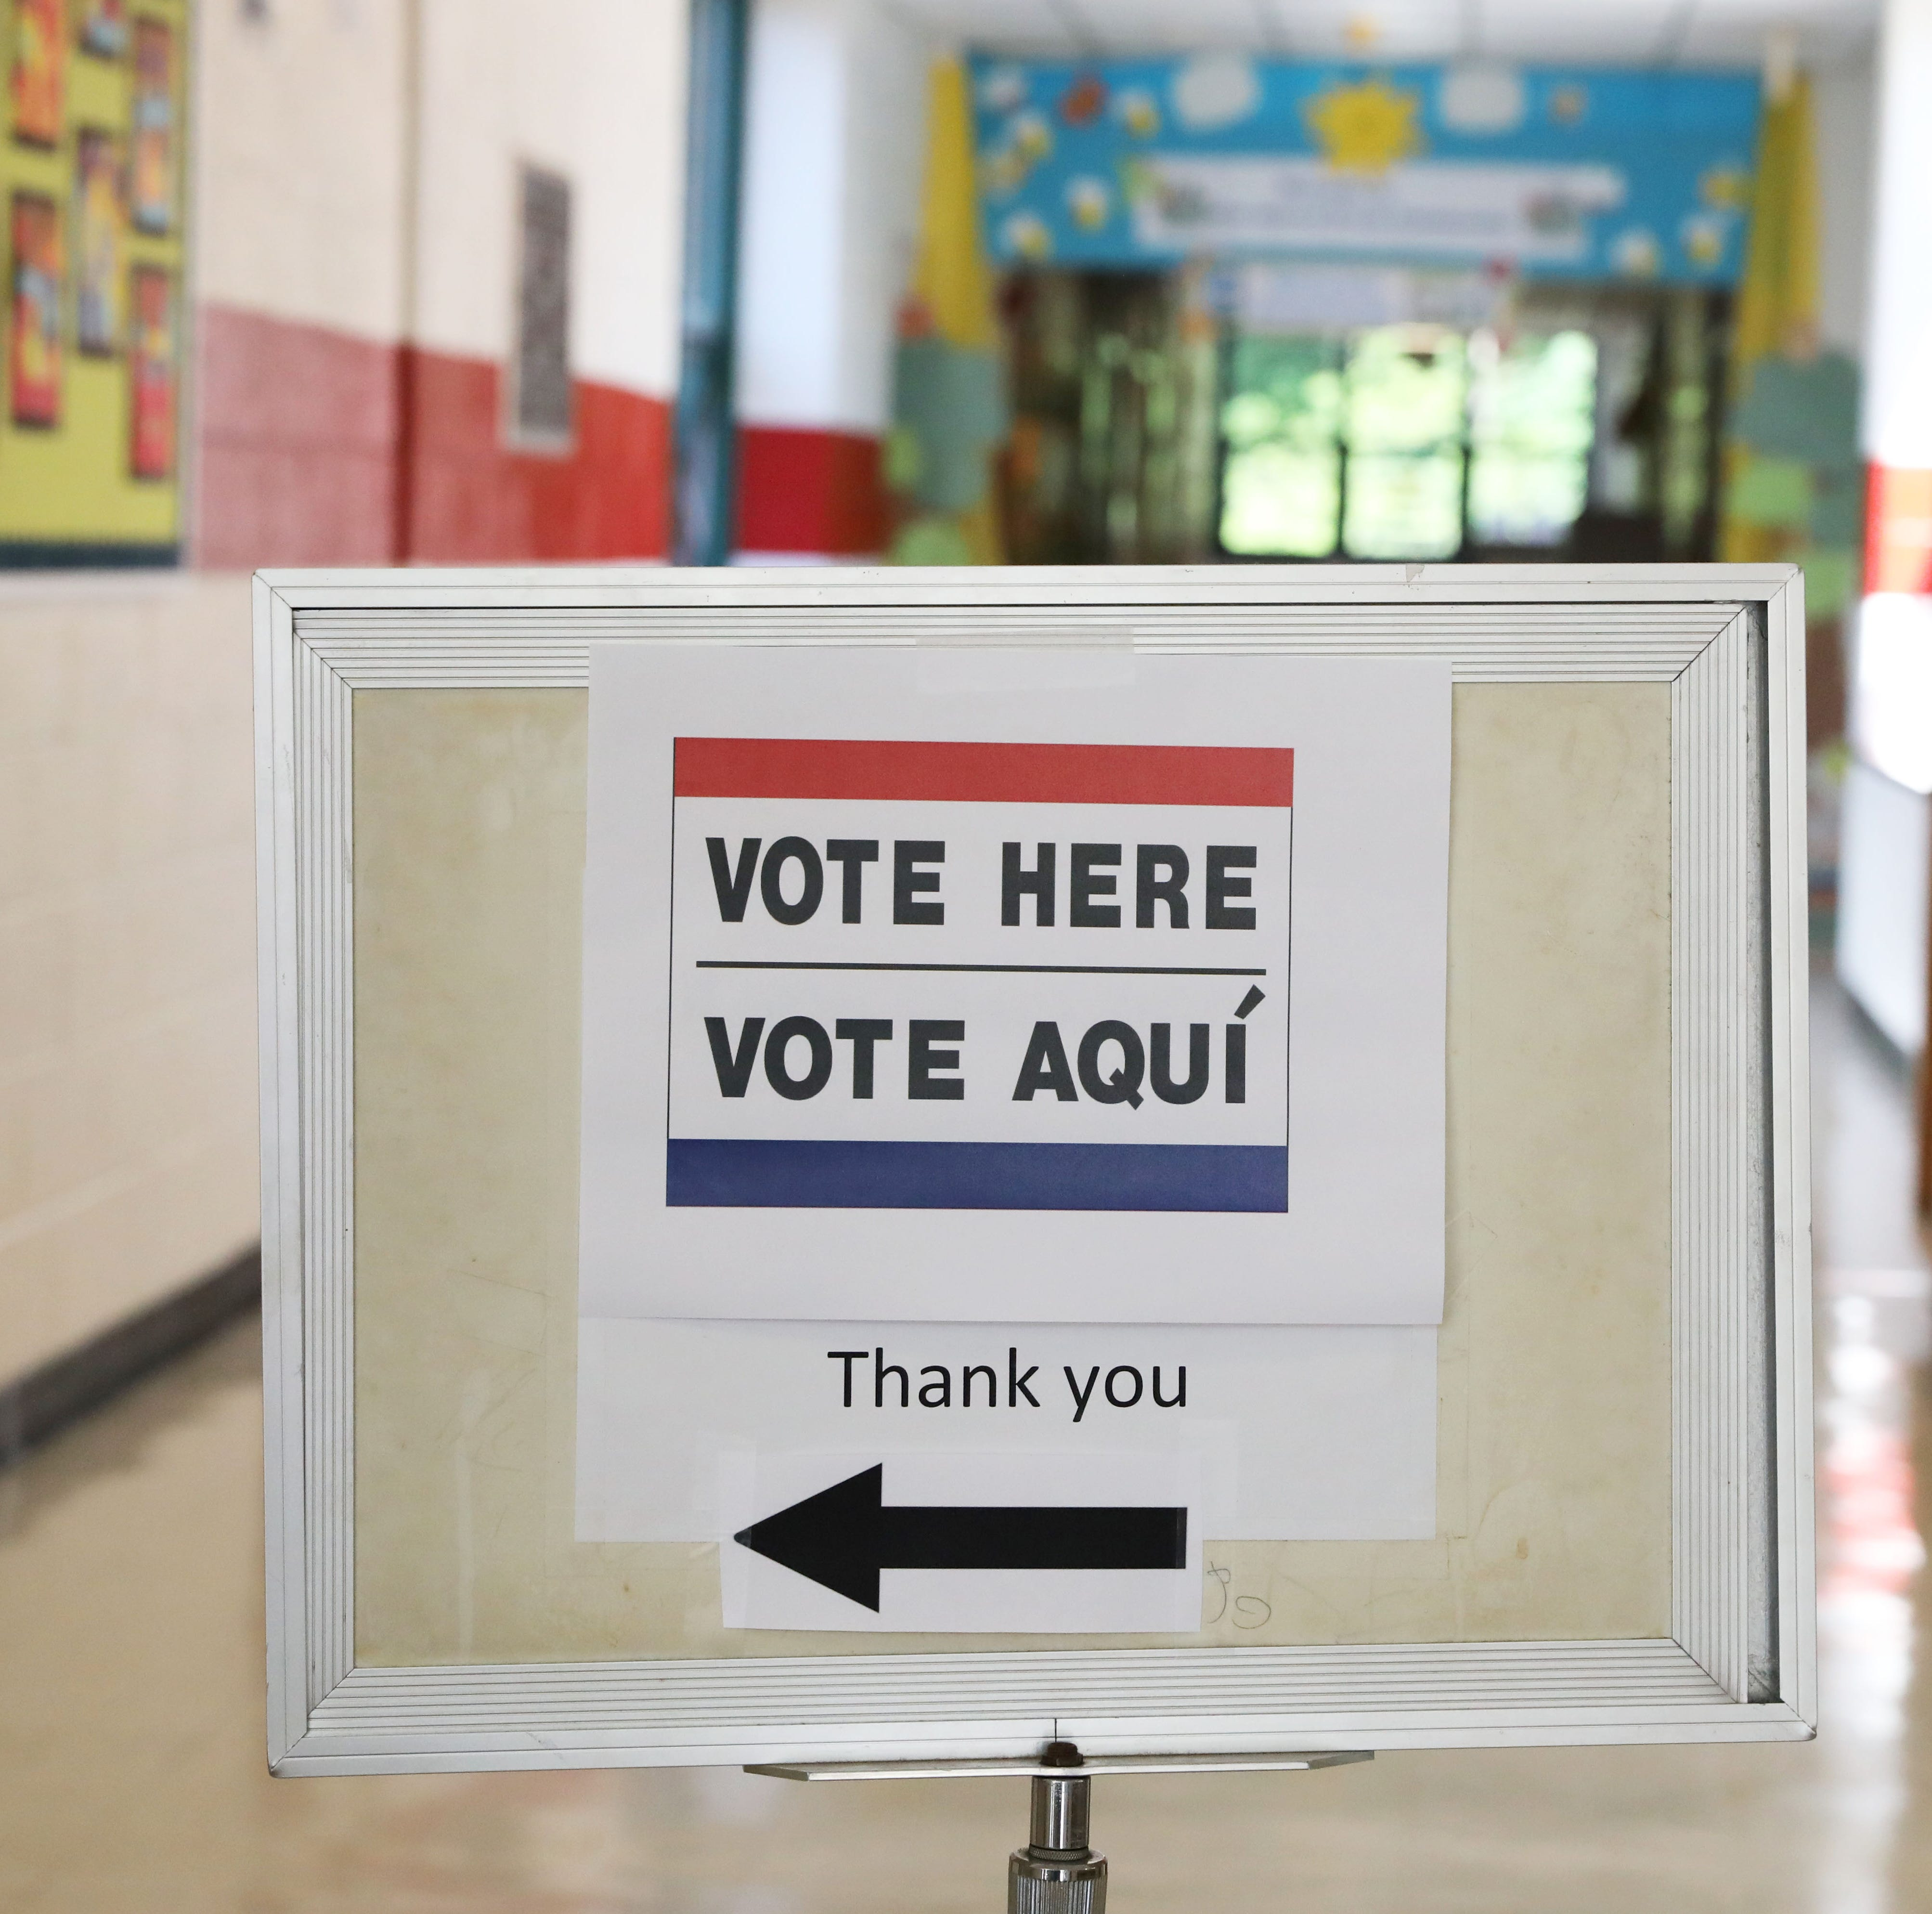 Voters approve every school district budget in Westchester, Rockland by wide margins